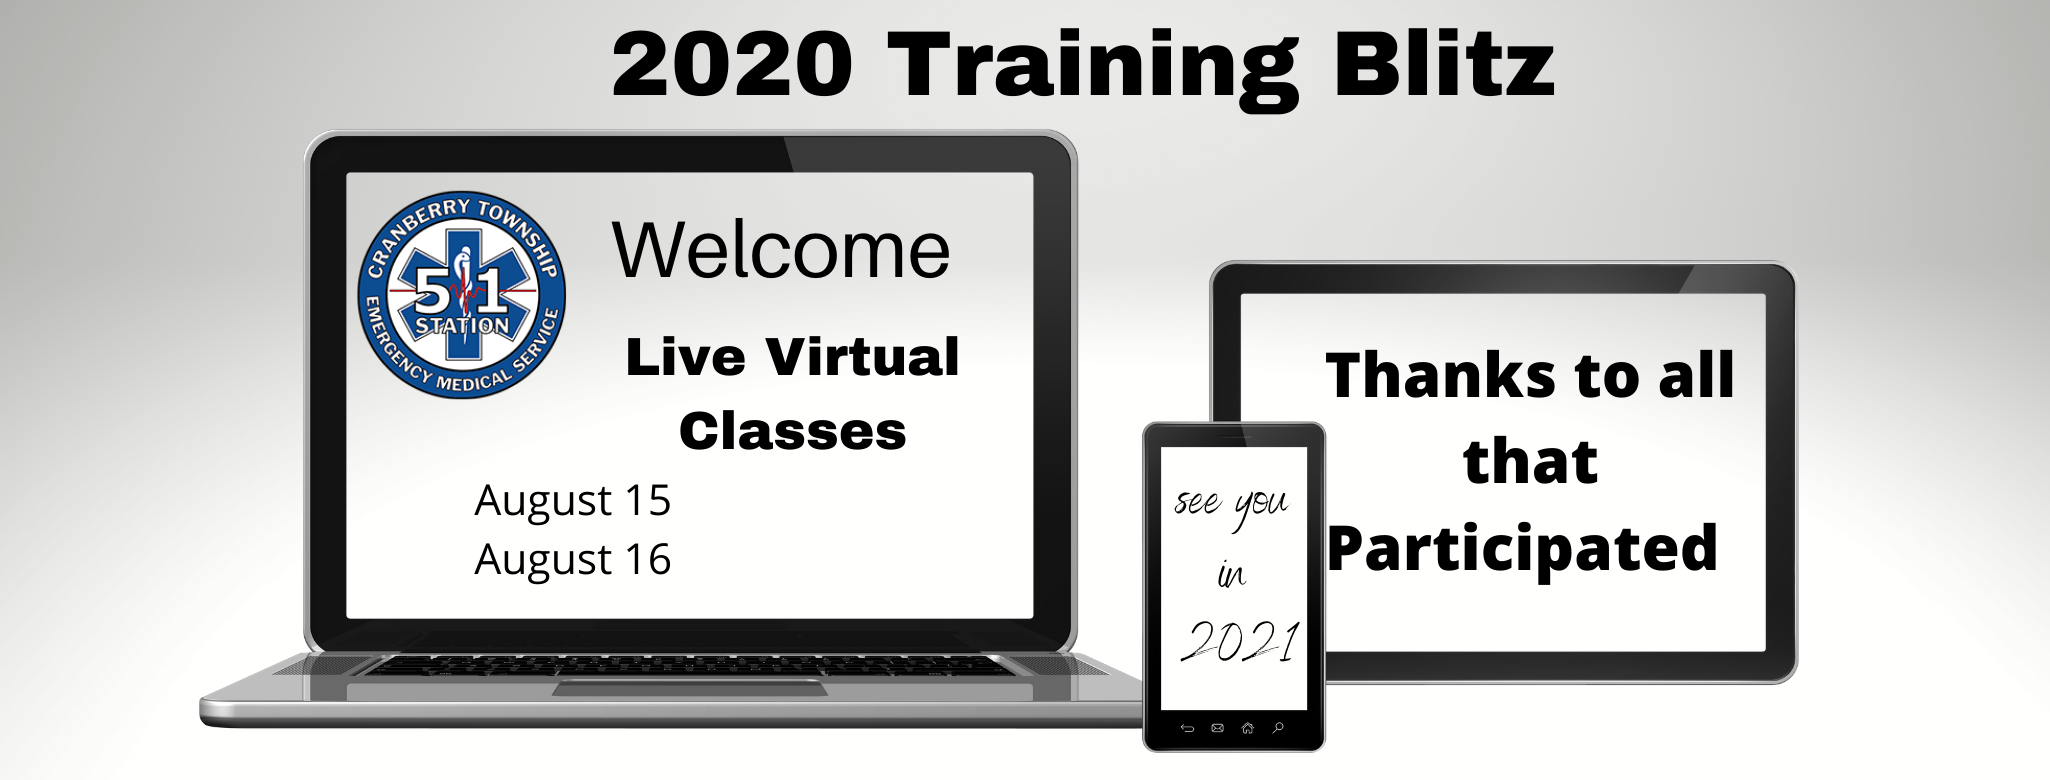 2020 Training Blitz 2